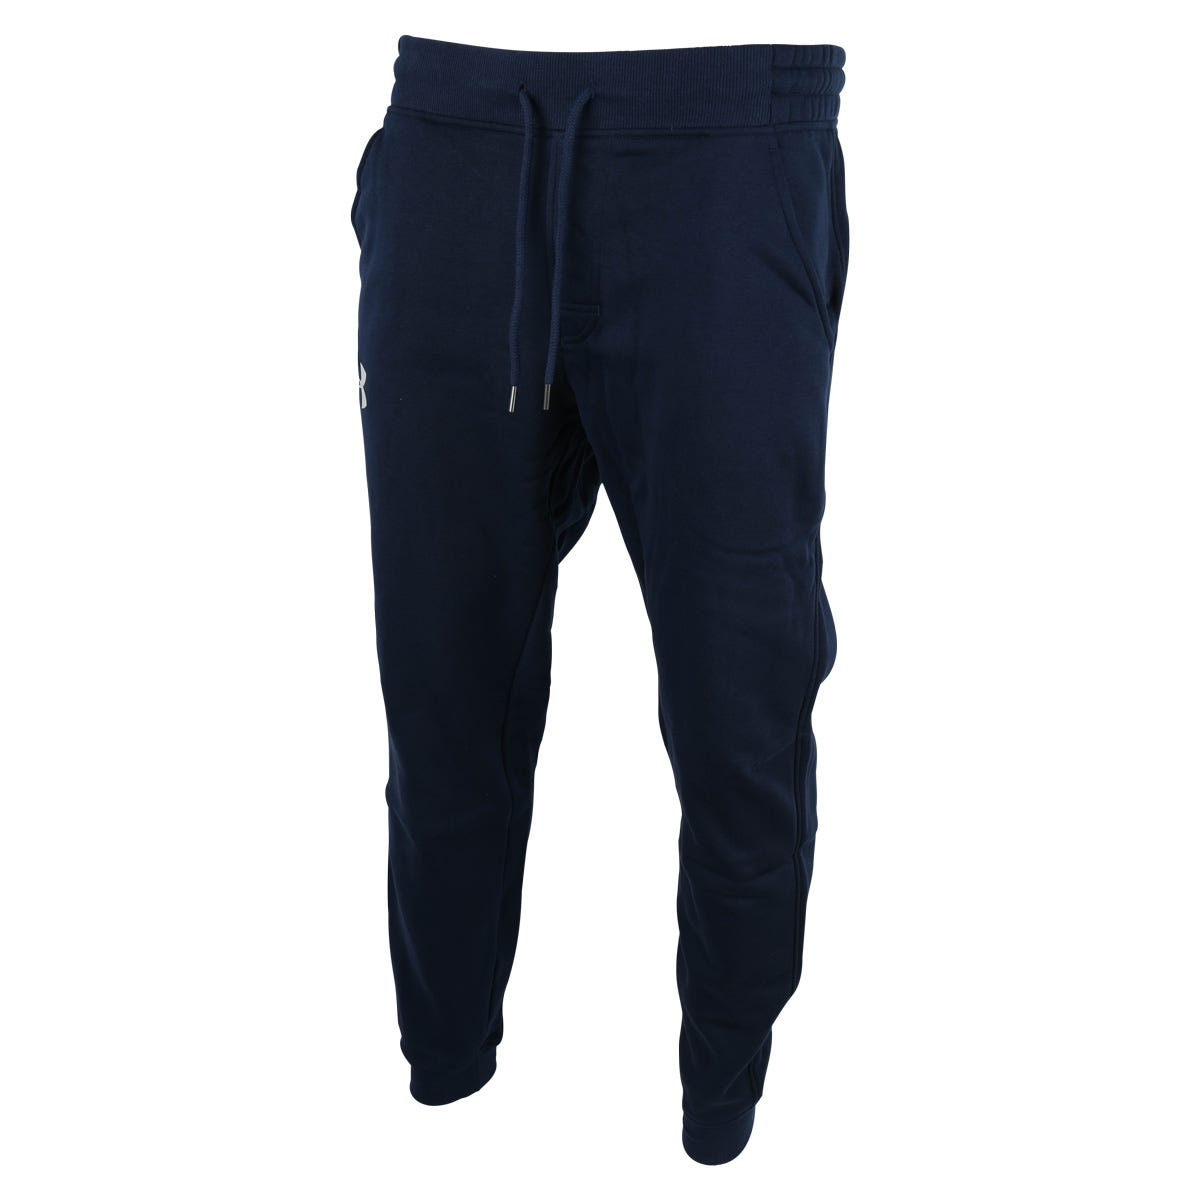 Under Armour Rival Cotton Senior Jogger Pant